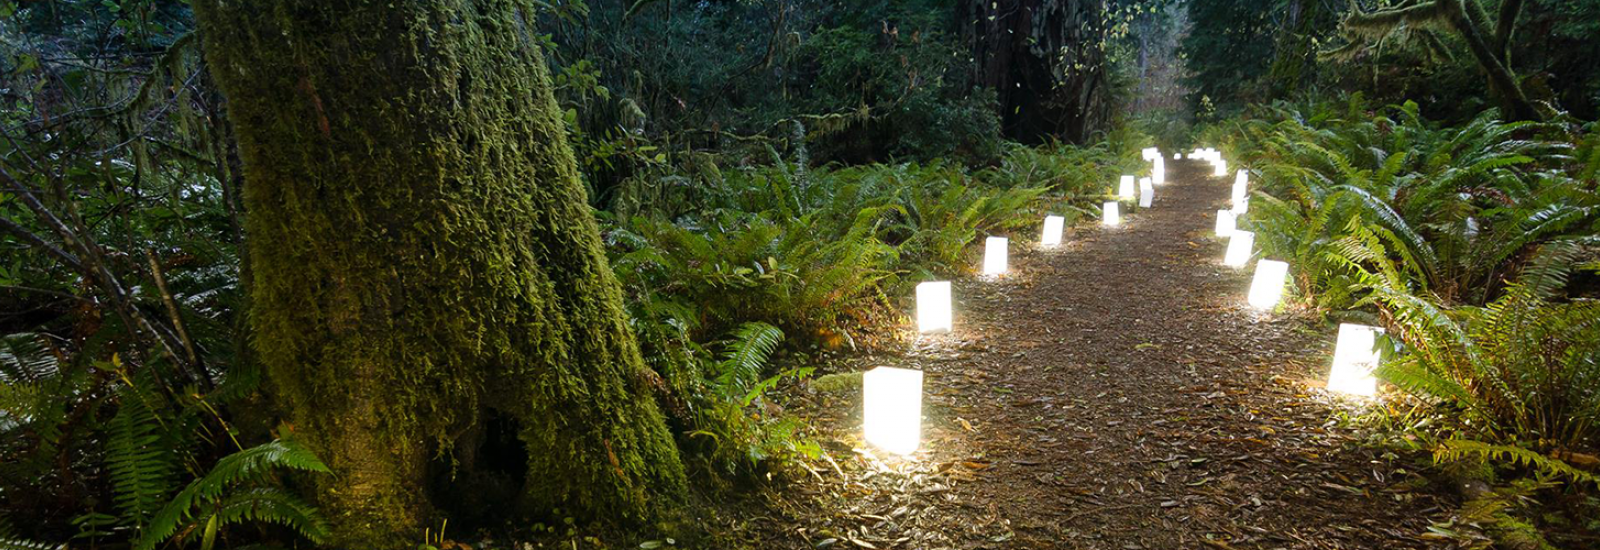 A Candlelight Walk Among the Redwoods